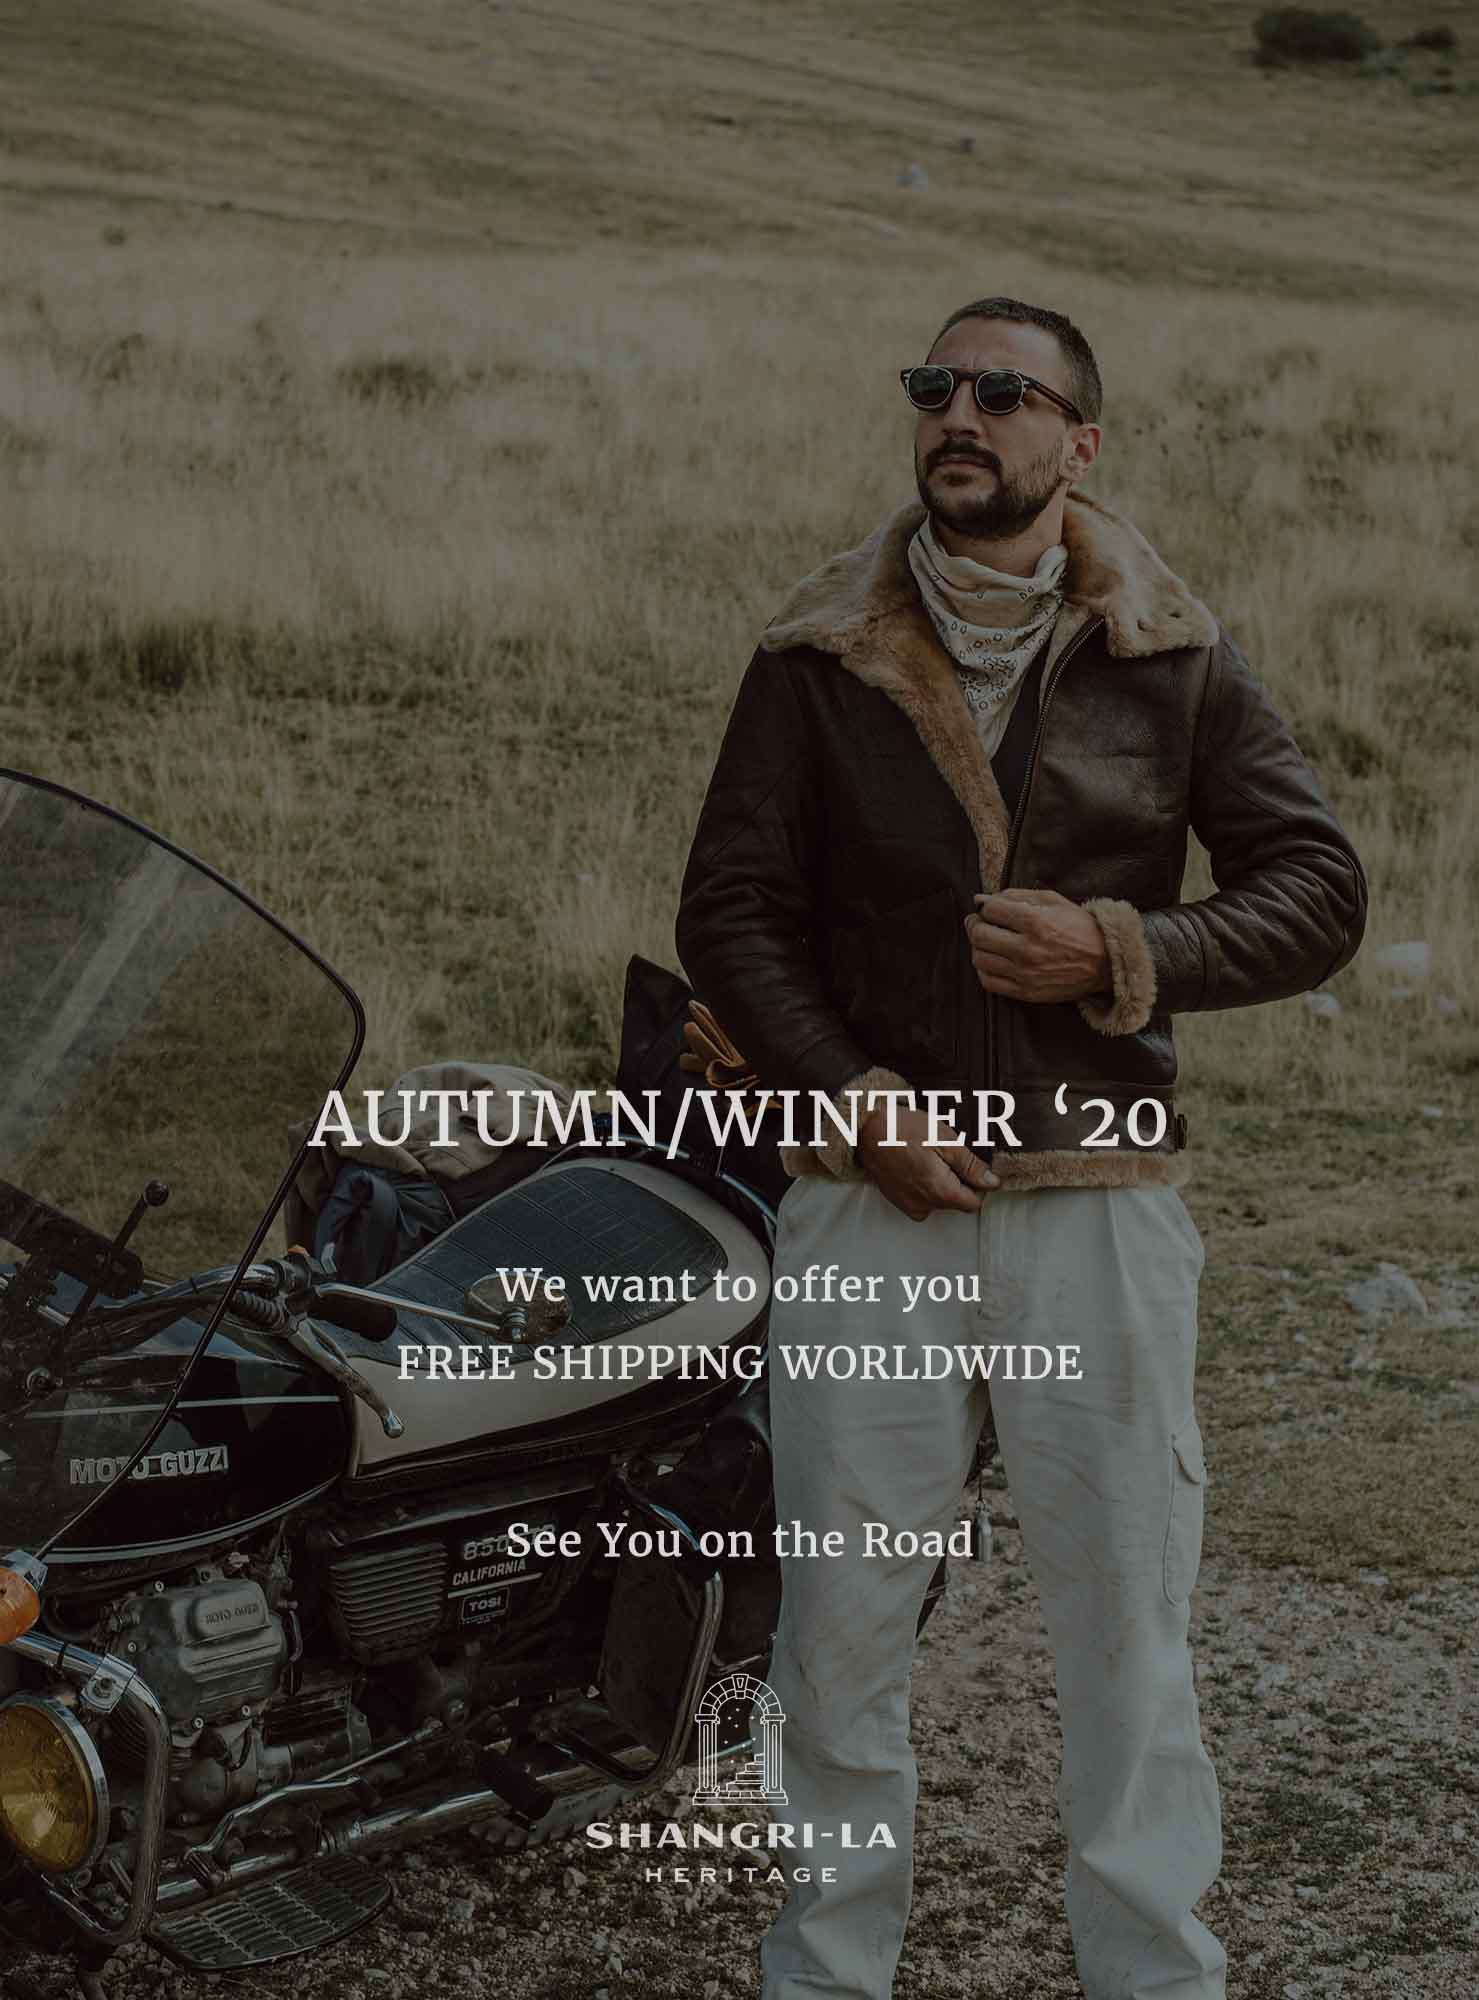 shangri-la-heritage-free-shipping-worldwide-autumn-winter-20